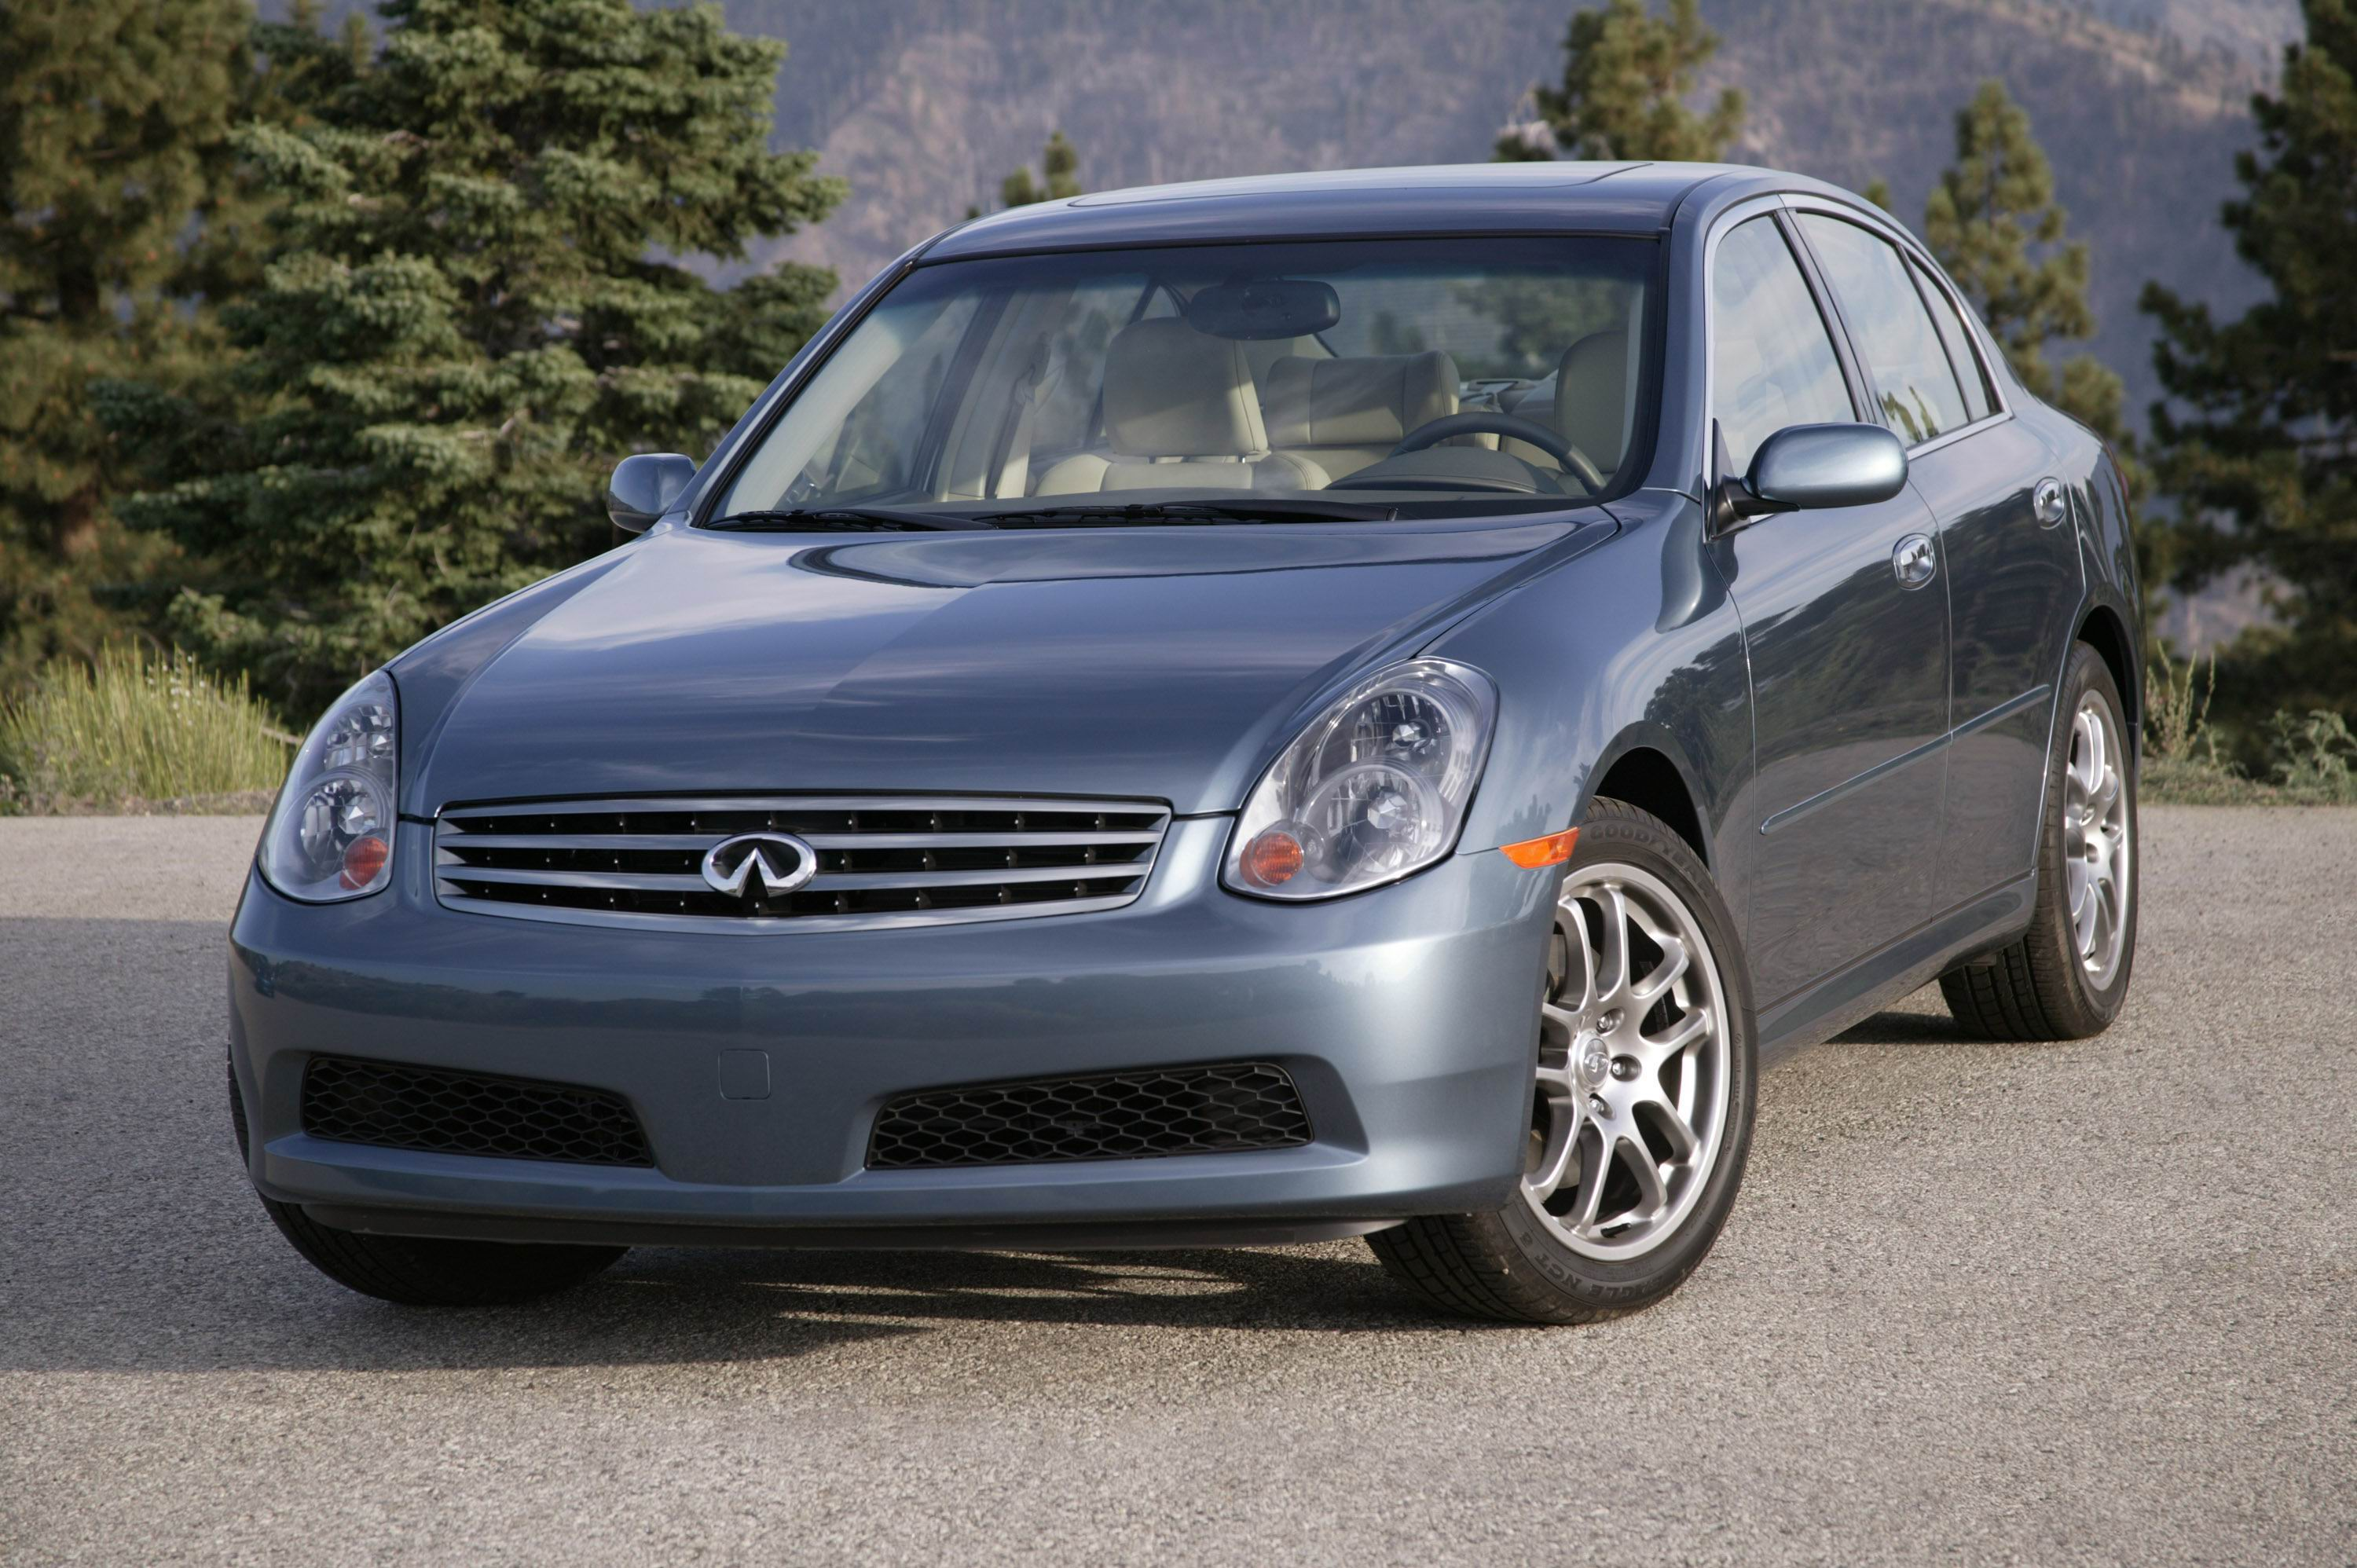 2005 infiniti g35 sedan hd pictures. Black Bedroom Furniture Sets. Home Design Ideas